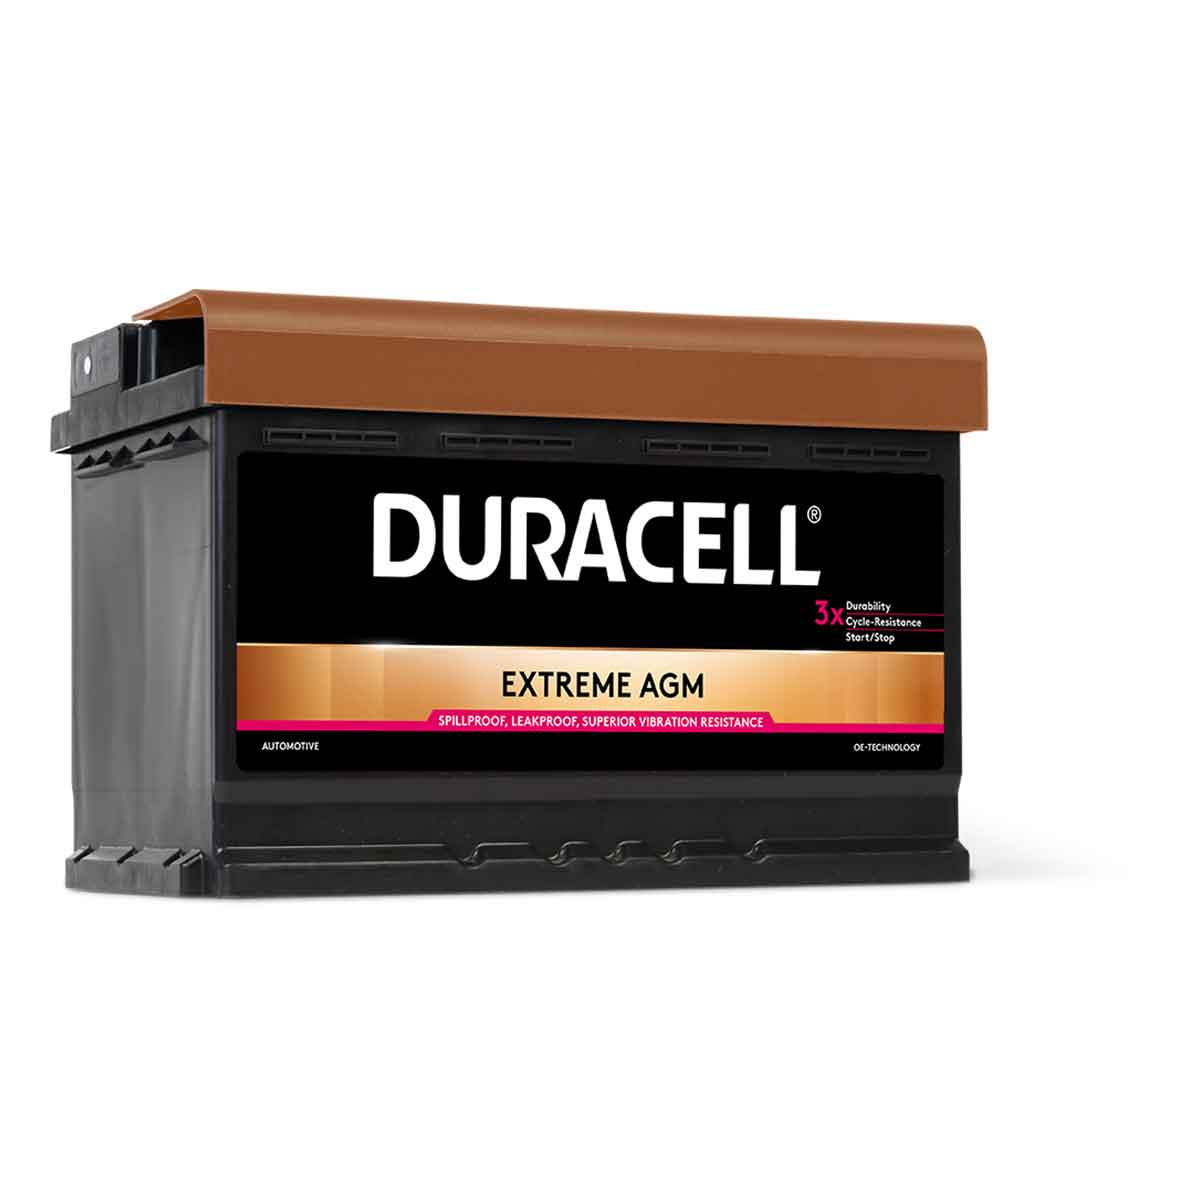 Duracell-Extreme-Battery.jpg